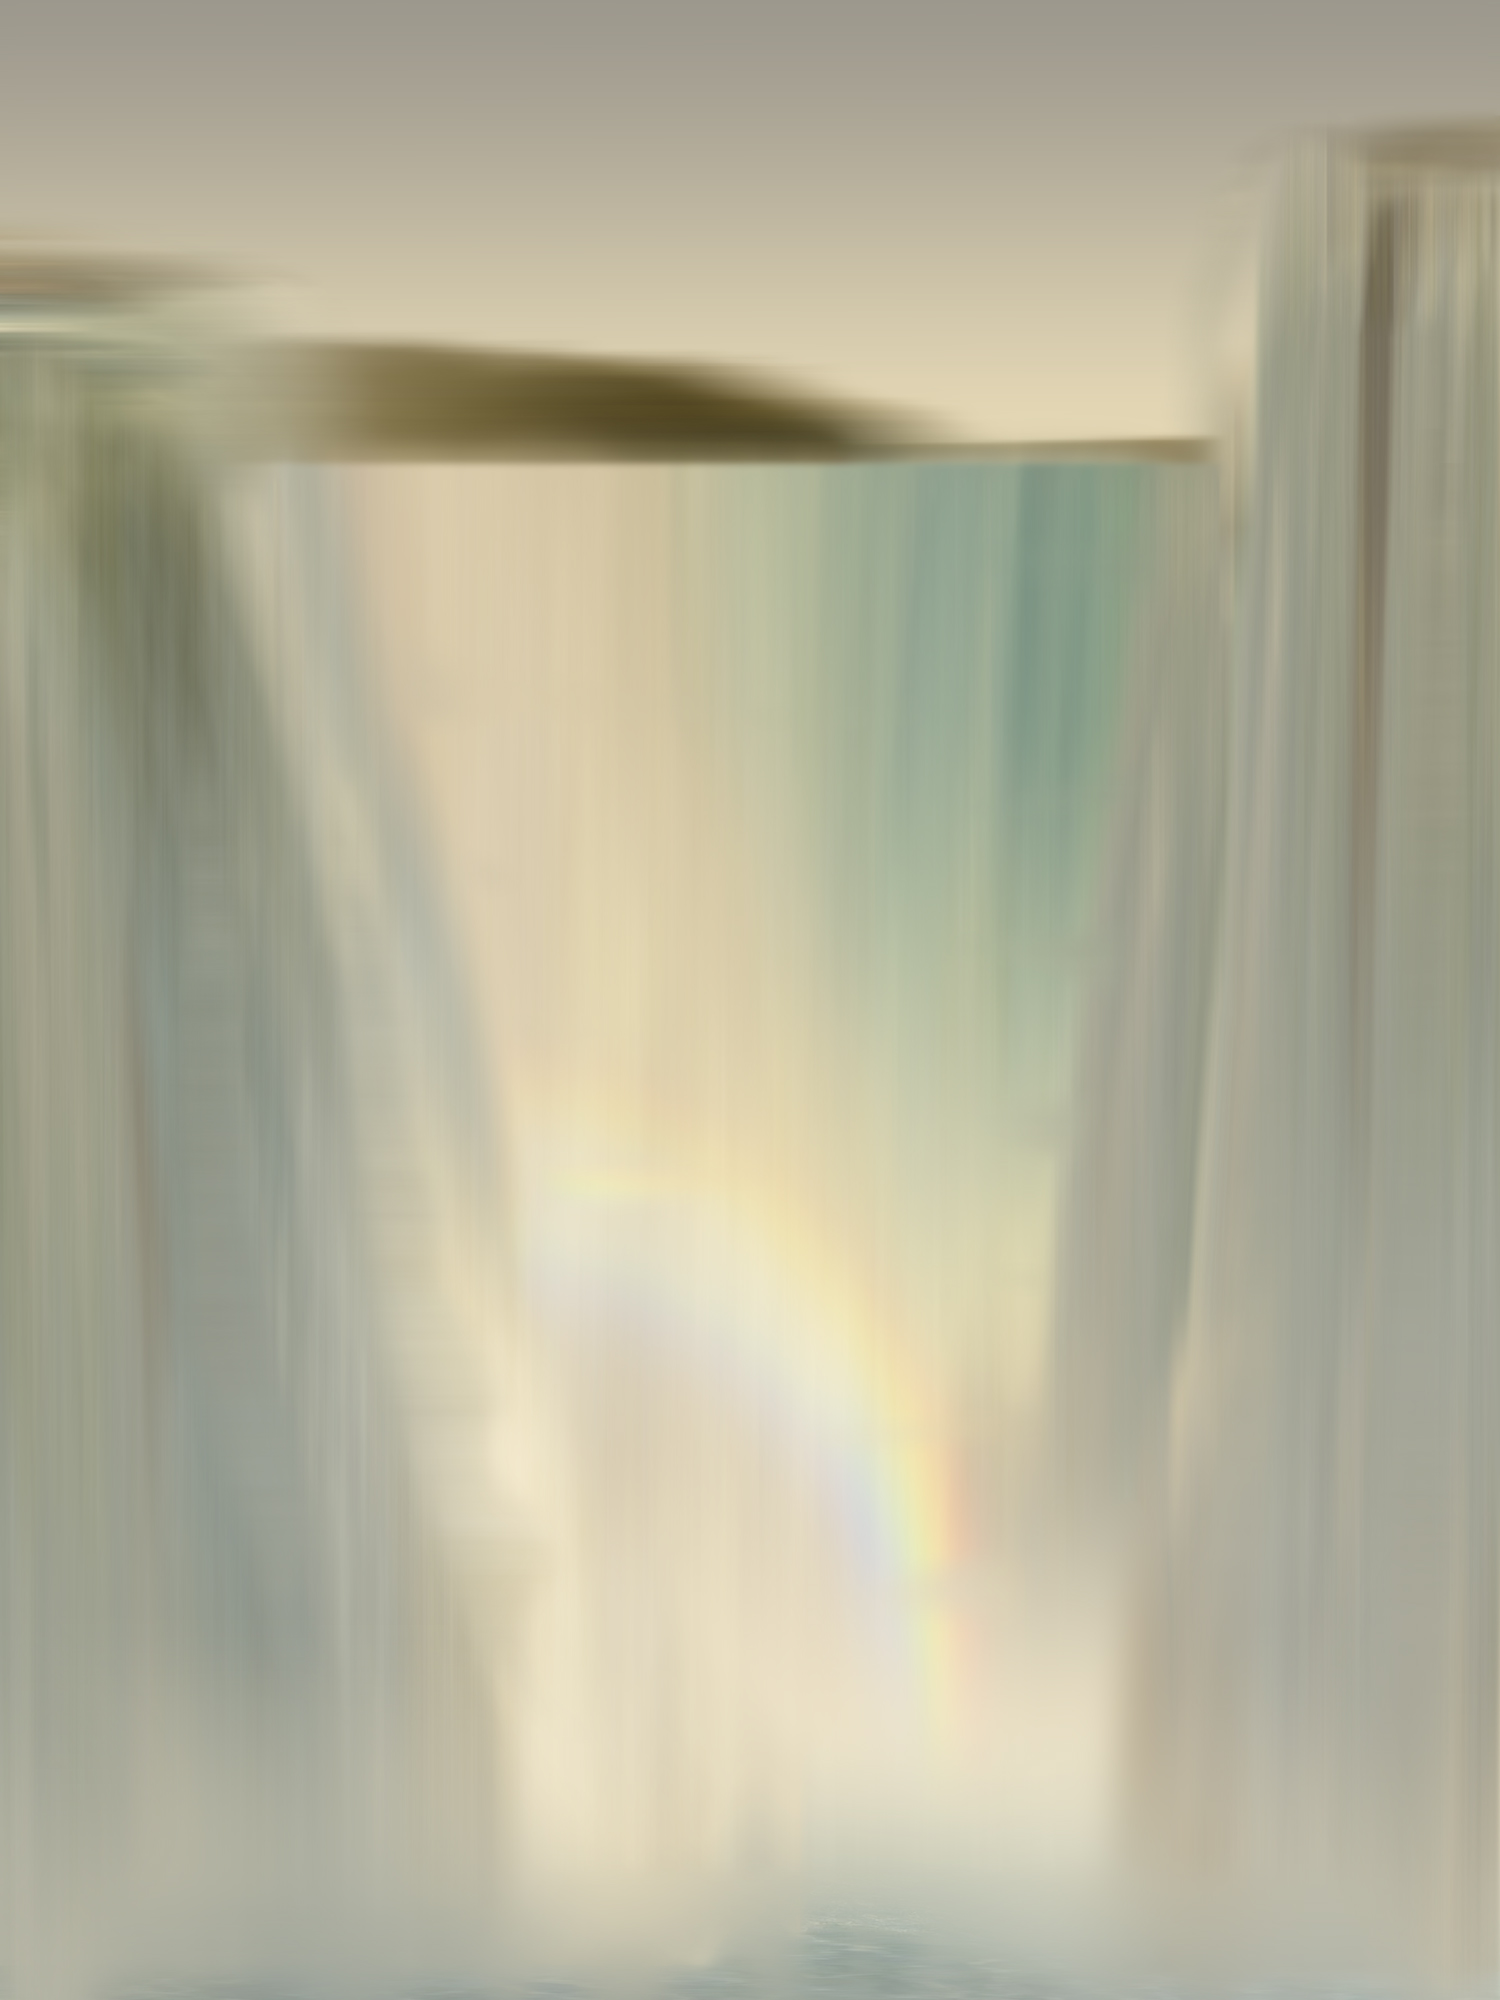 Ted Kincaid, Variation on a Waterfall by Church, 2015